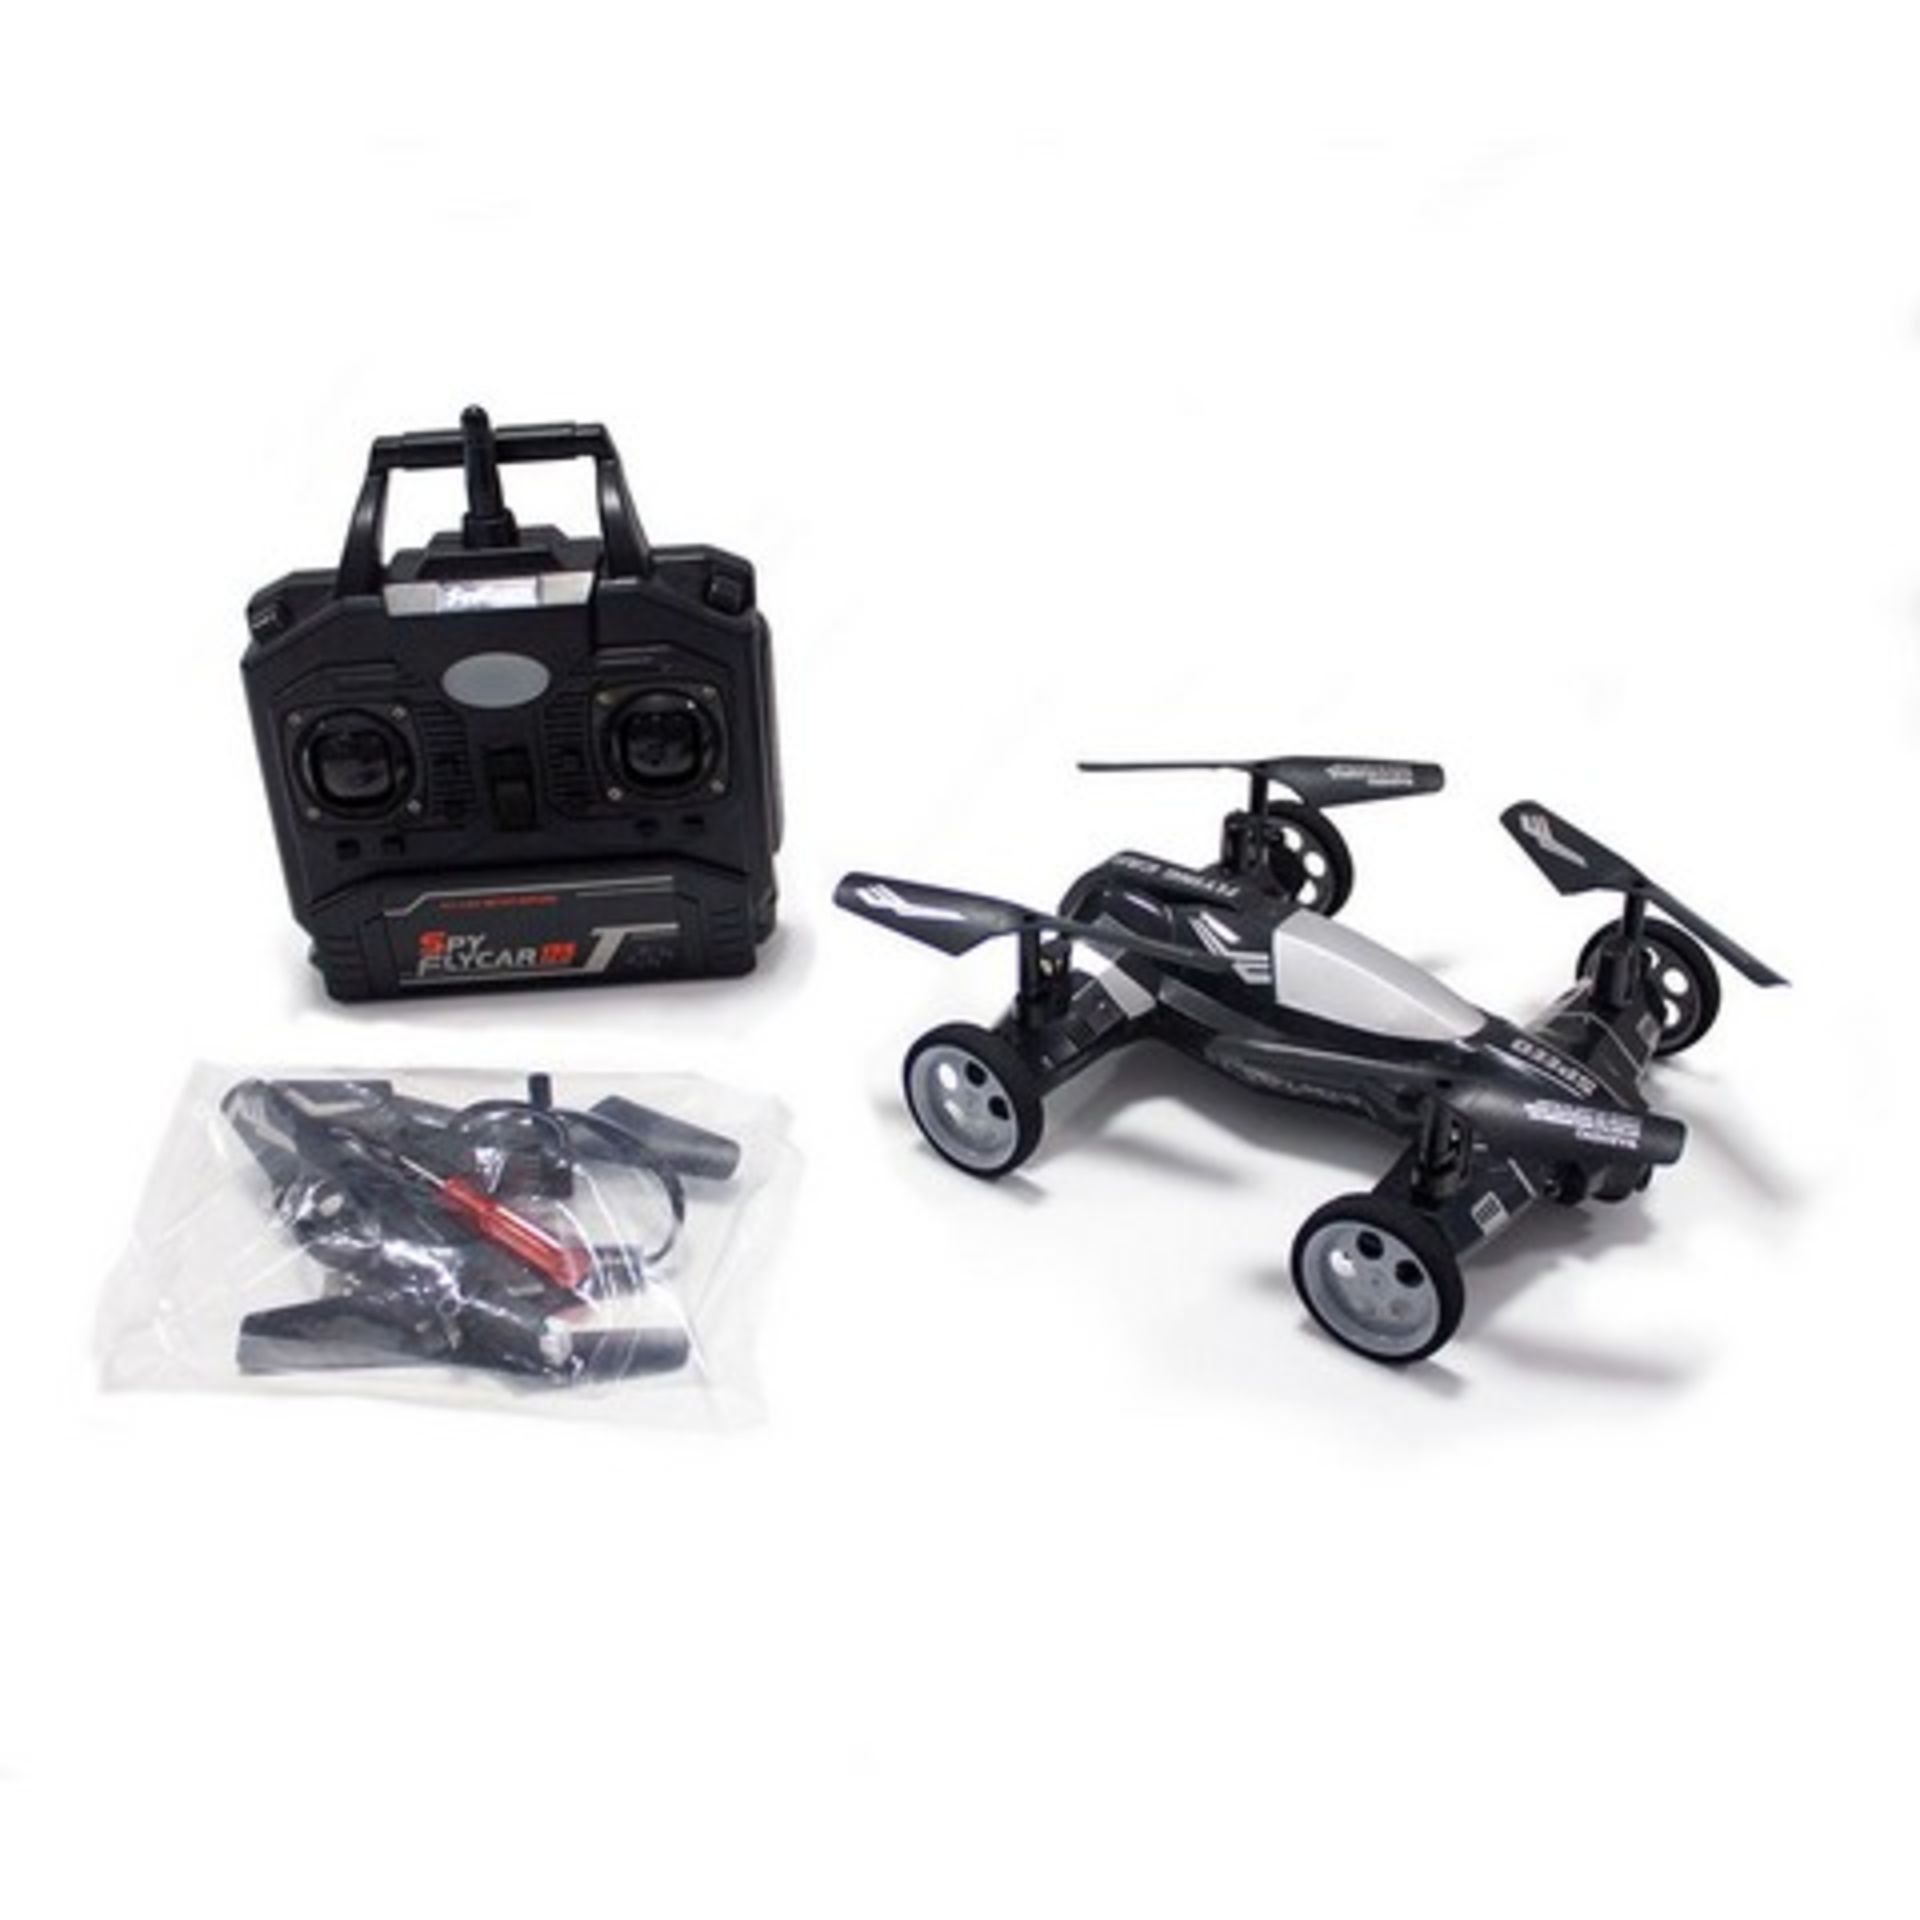 Lot 51819 - V Brand New Radio Control Quad-Copter Orbit Moon Buggy - 720P HD Camera - 4GB Micro SD Card Included